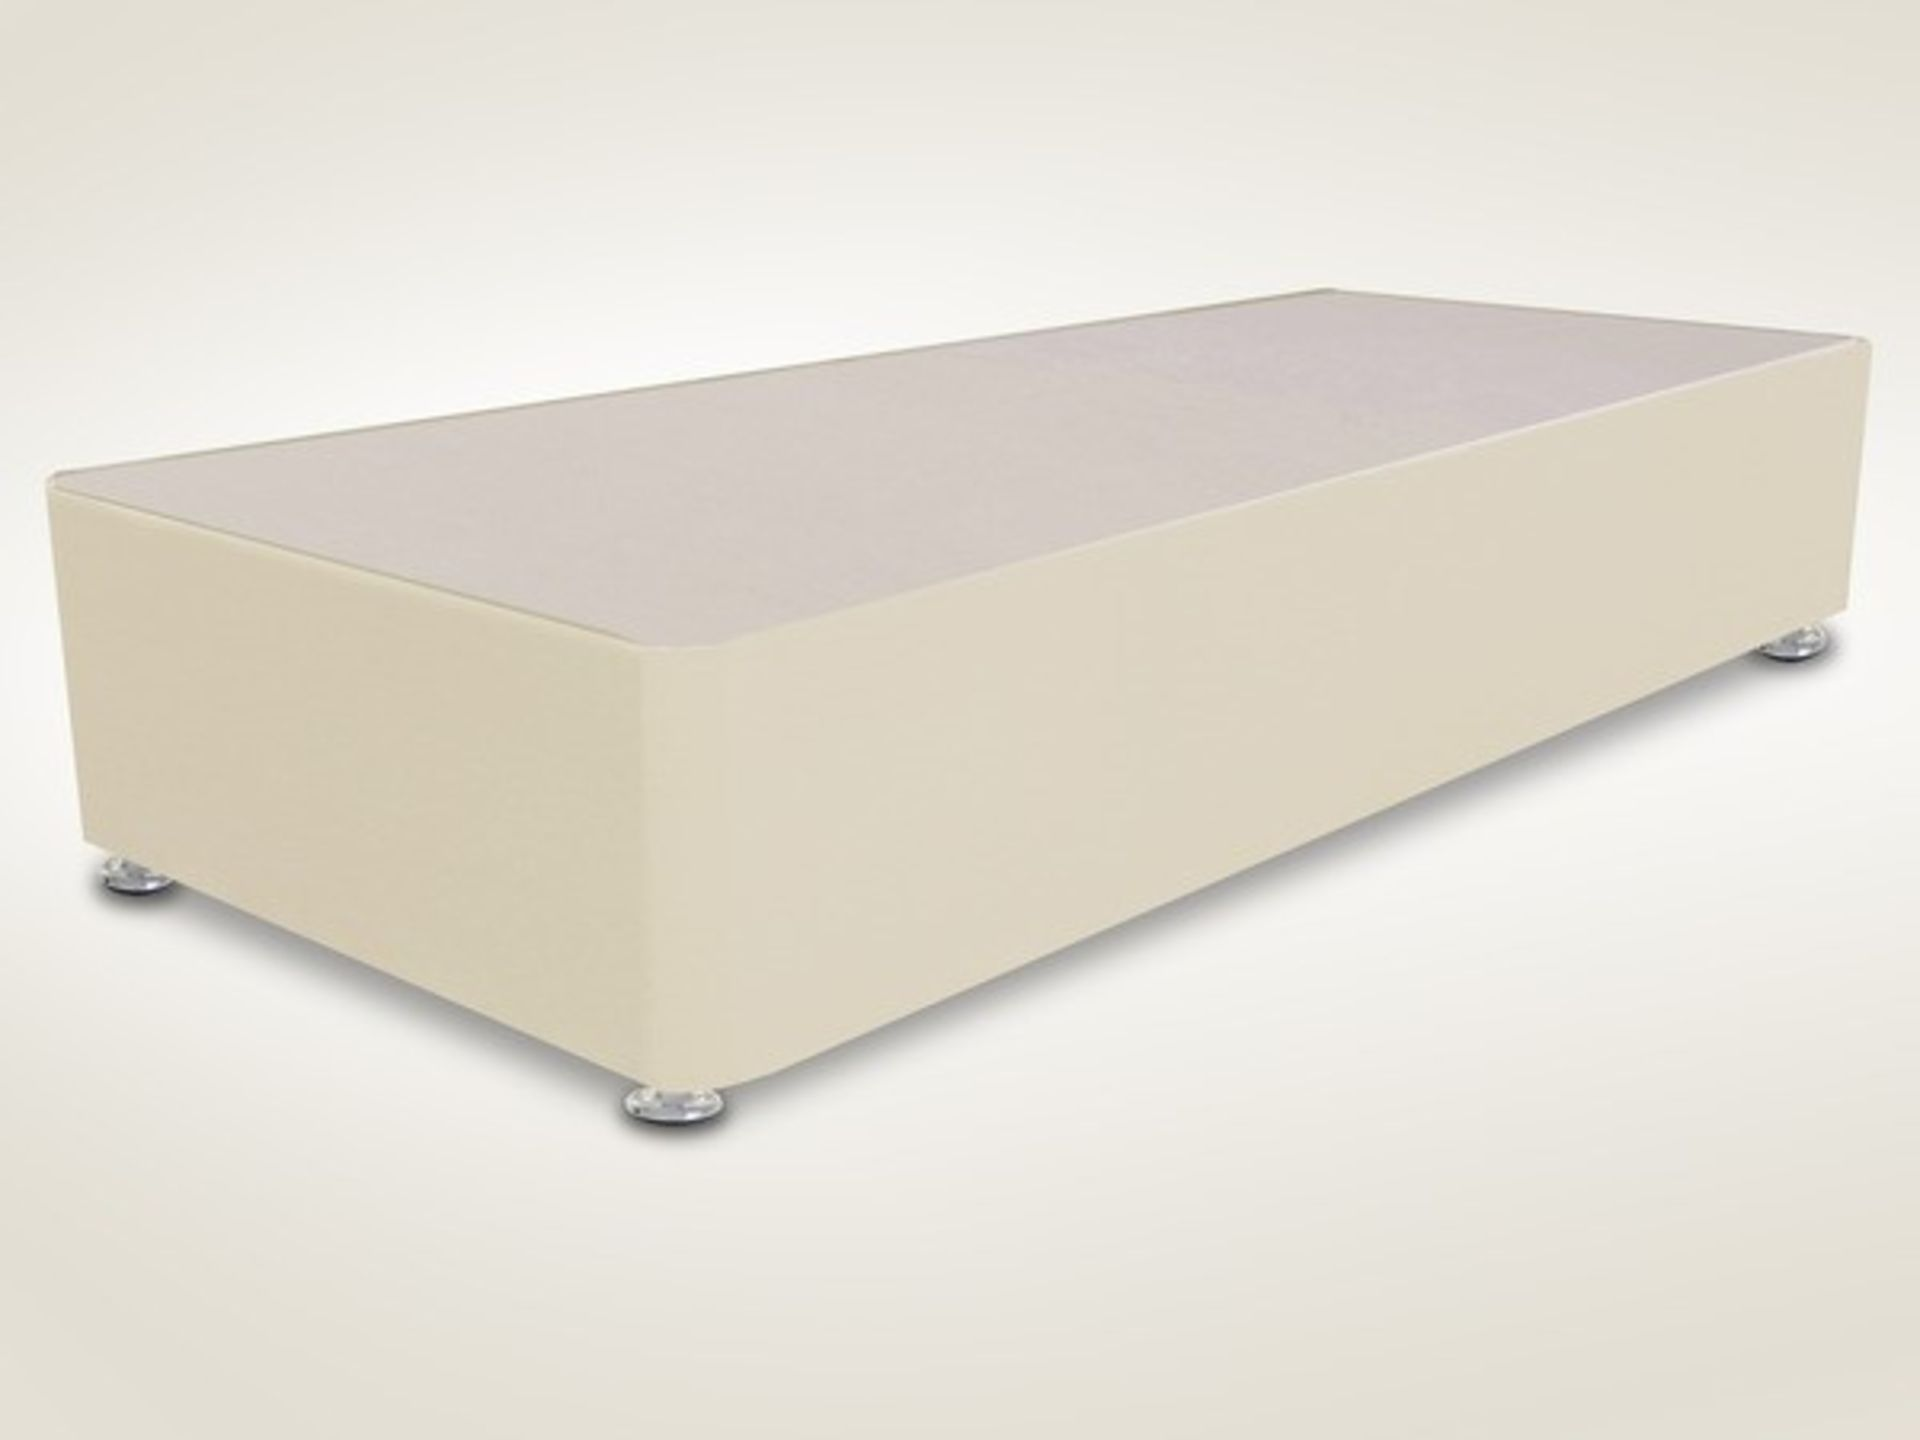 Lot 122 - 1 GRADE A BAGGED SINGLE DIVAN BED BASE FAUX LEATHER - WHITE - SIZE 3FT / NO DRAWERS / RRP £159.99 (